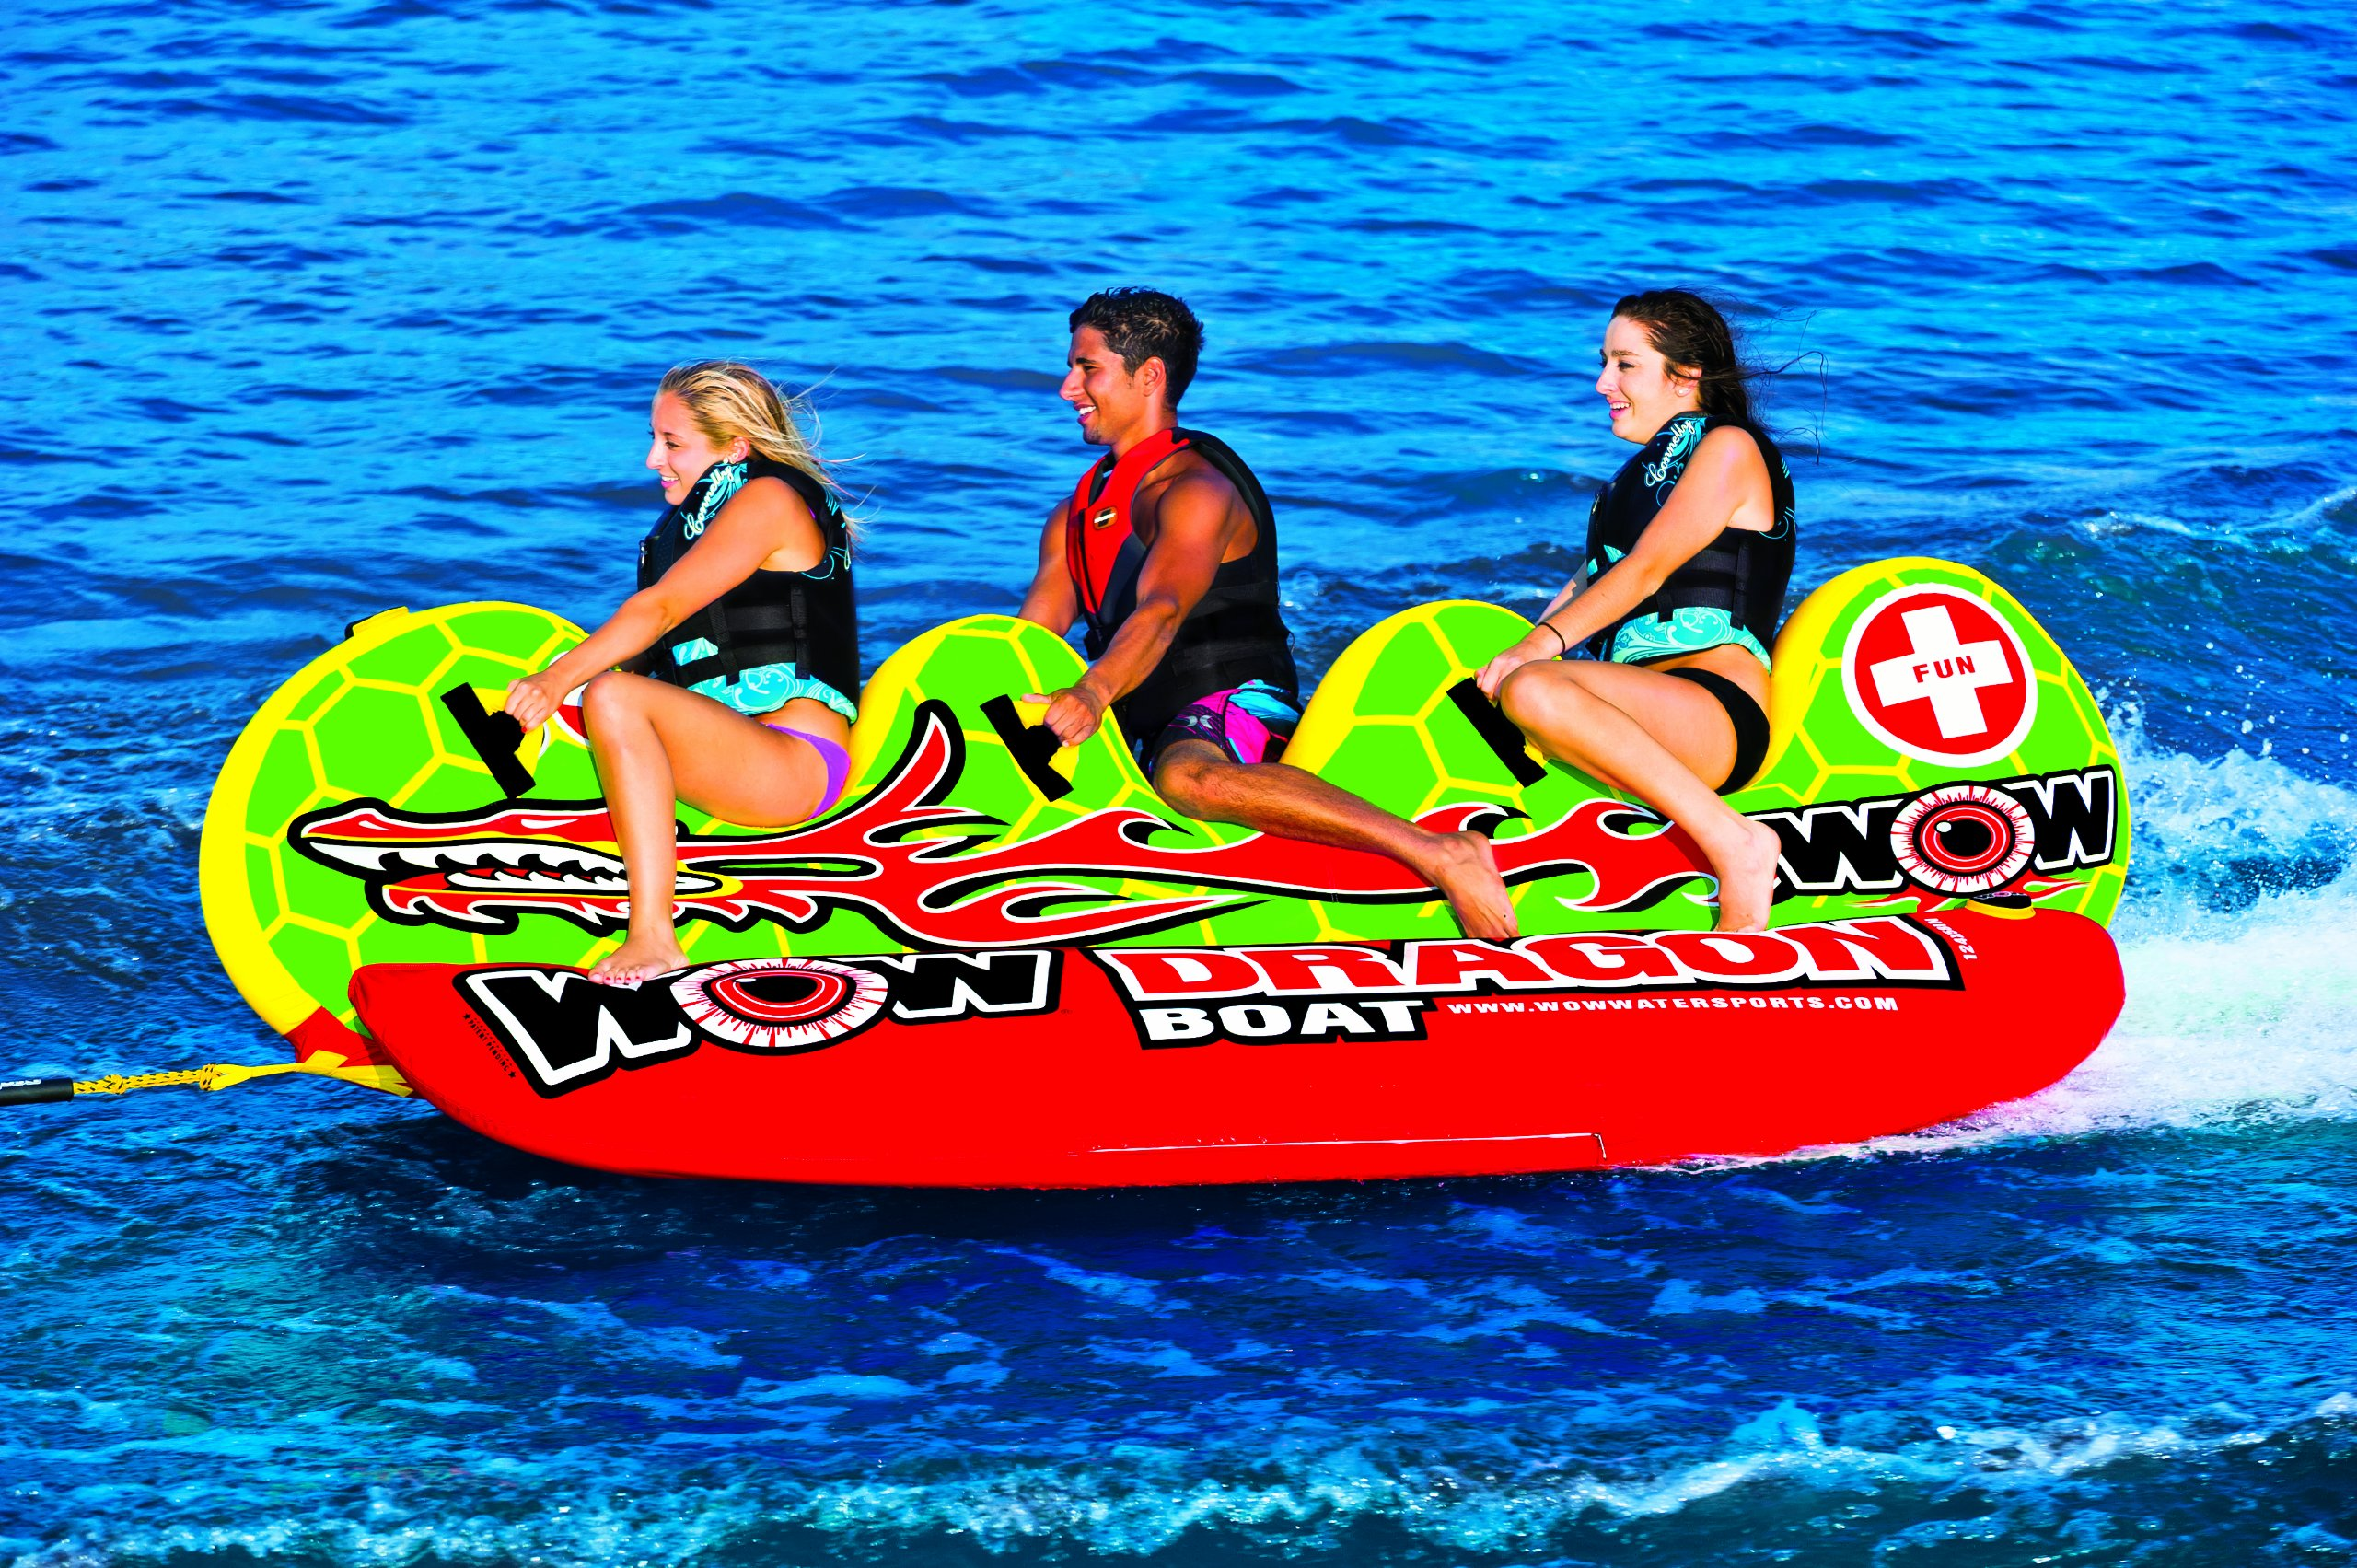 WOW World of Watersports 13-1060, Dragon Boat Inflatable Towable, Ski Tube, 3 Person by WOW Sports (Image #3)